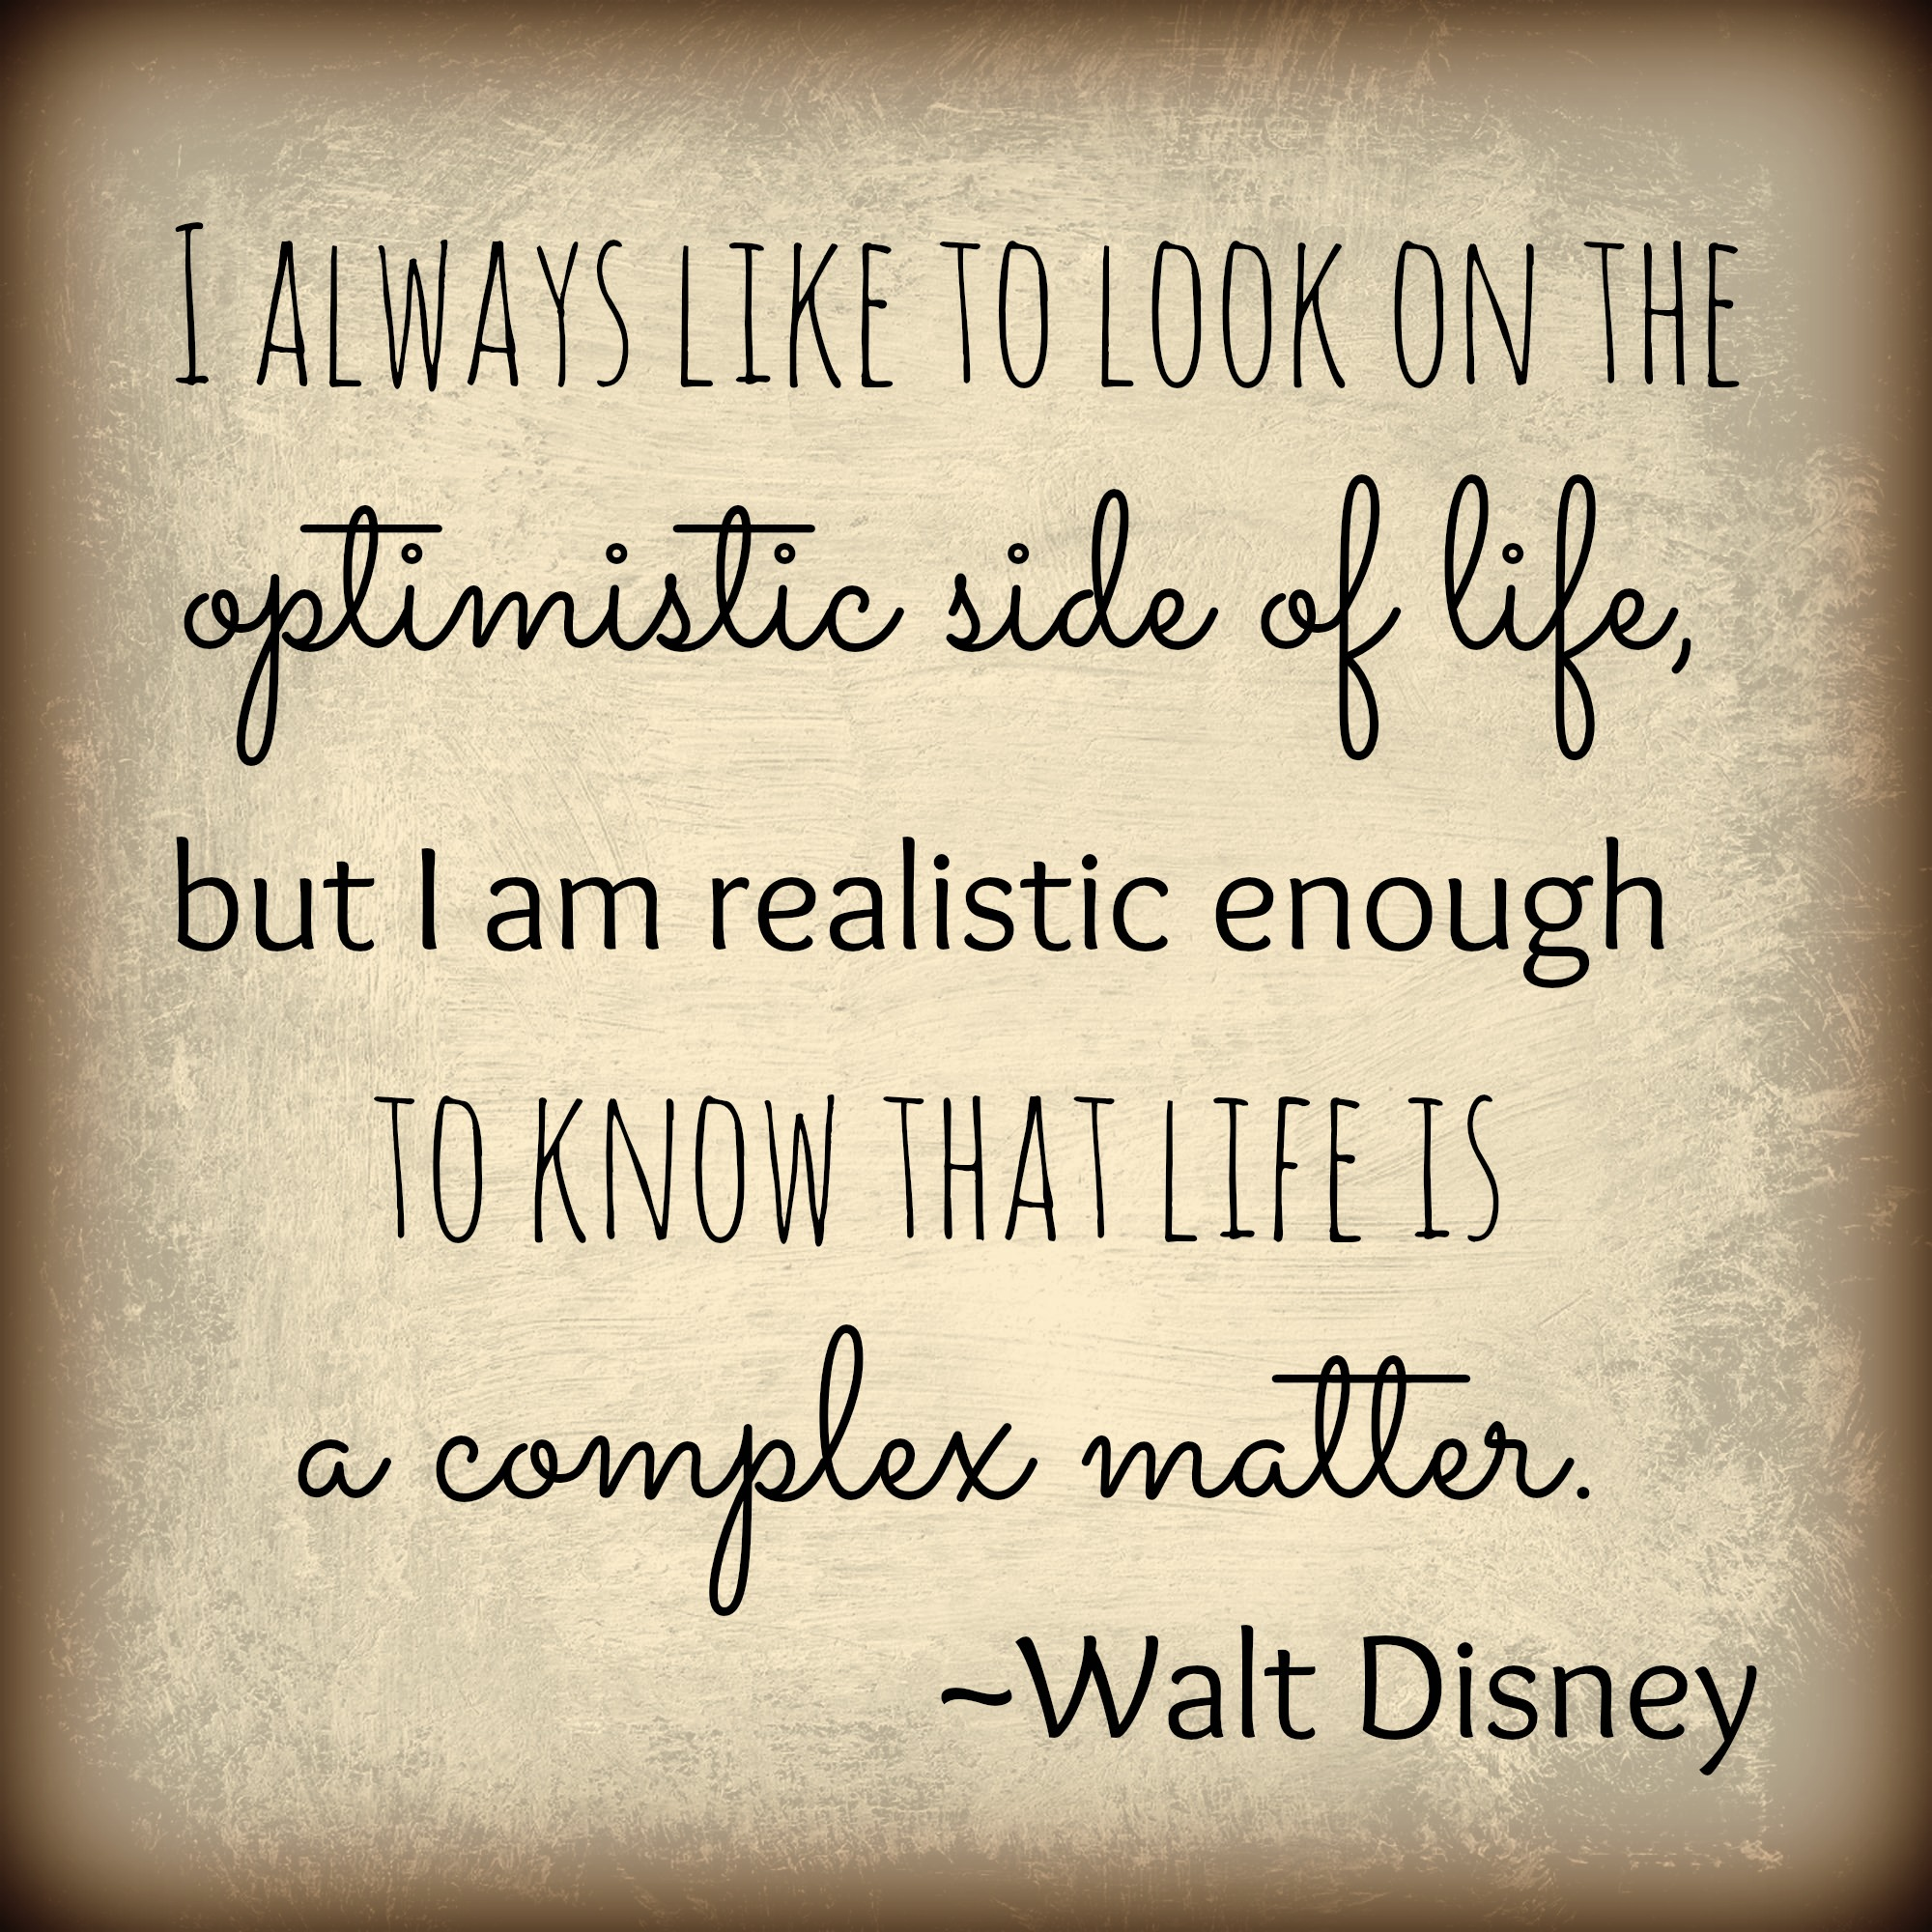 Walt Disney Quotes About Friendship Quotes About Friendship Walt Disney Quotes From Disney Cartoons